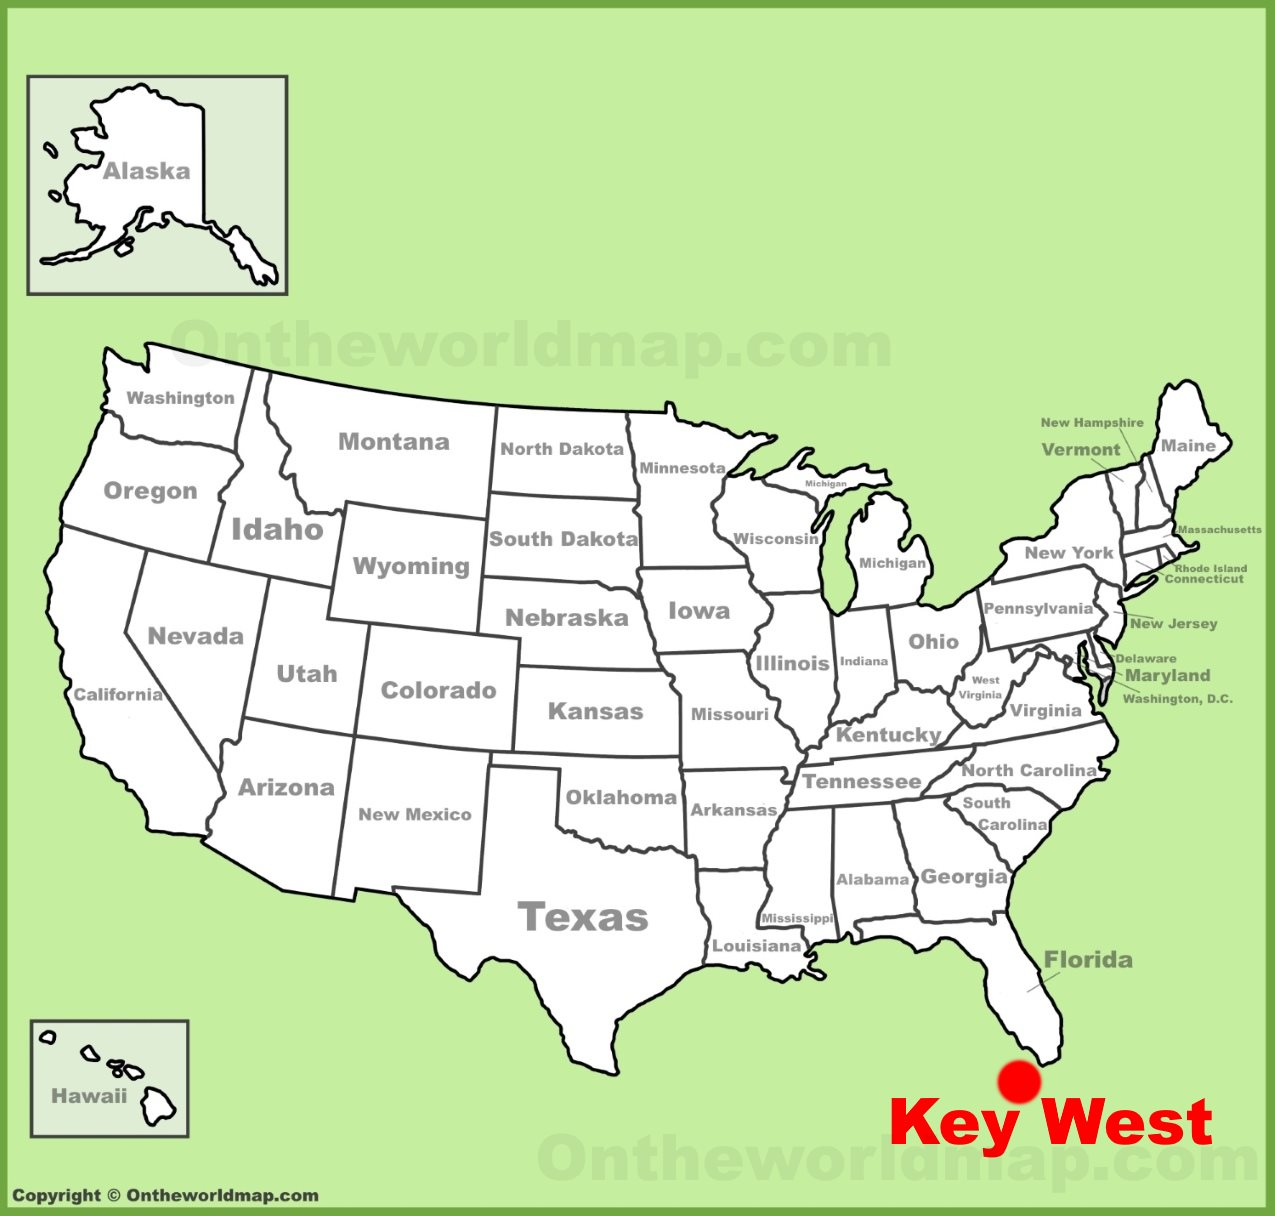 Key West location on the U.S. Map Key West On Us Map on newport on us map, juneau on us map, martha's vineyard on us map, madison on us map, mount vernon on us map, portsmouth on us map, naples on us map, panama city on us map, north platte on us map, roanoke on us map, walt disney world on us map, largo on us map, cancun on us map, columbia on us map, grand canyon national park on us map, orange county on us map, cabo san lucas on us map, sioux falls on us map, hudson on us map, saint augustine on us map,